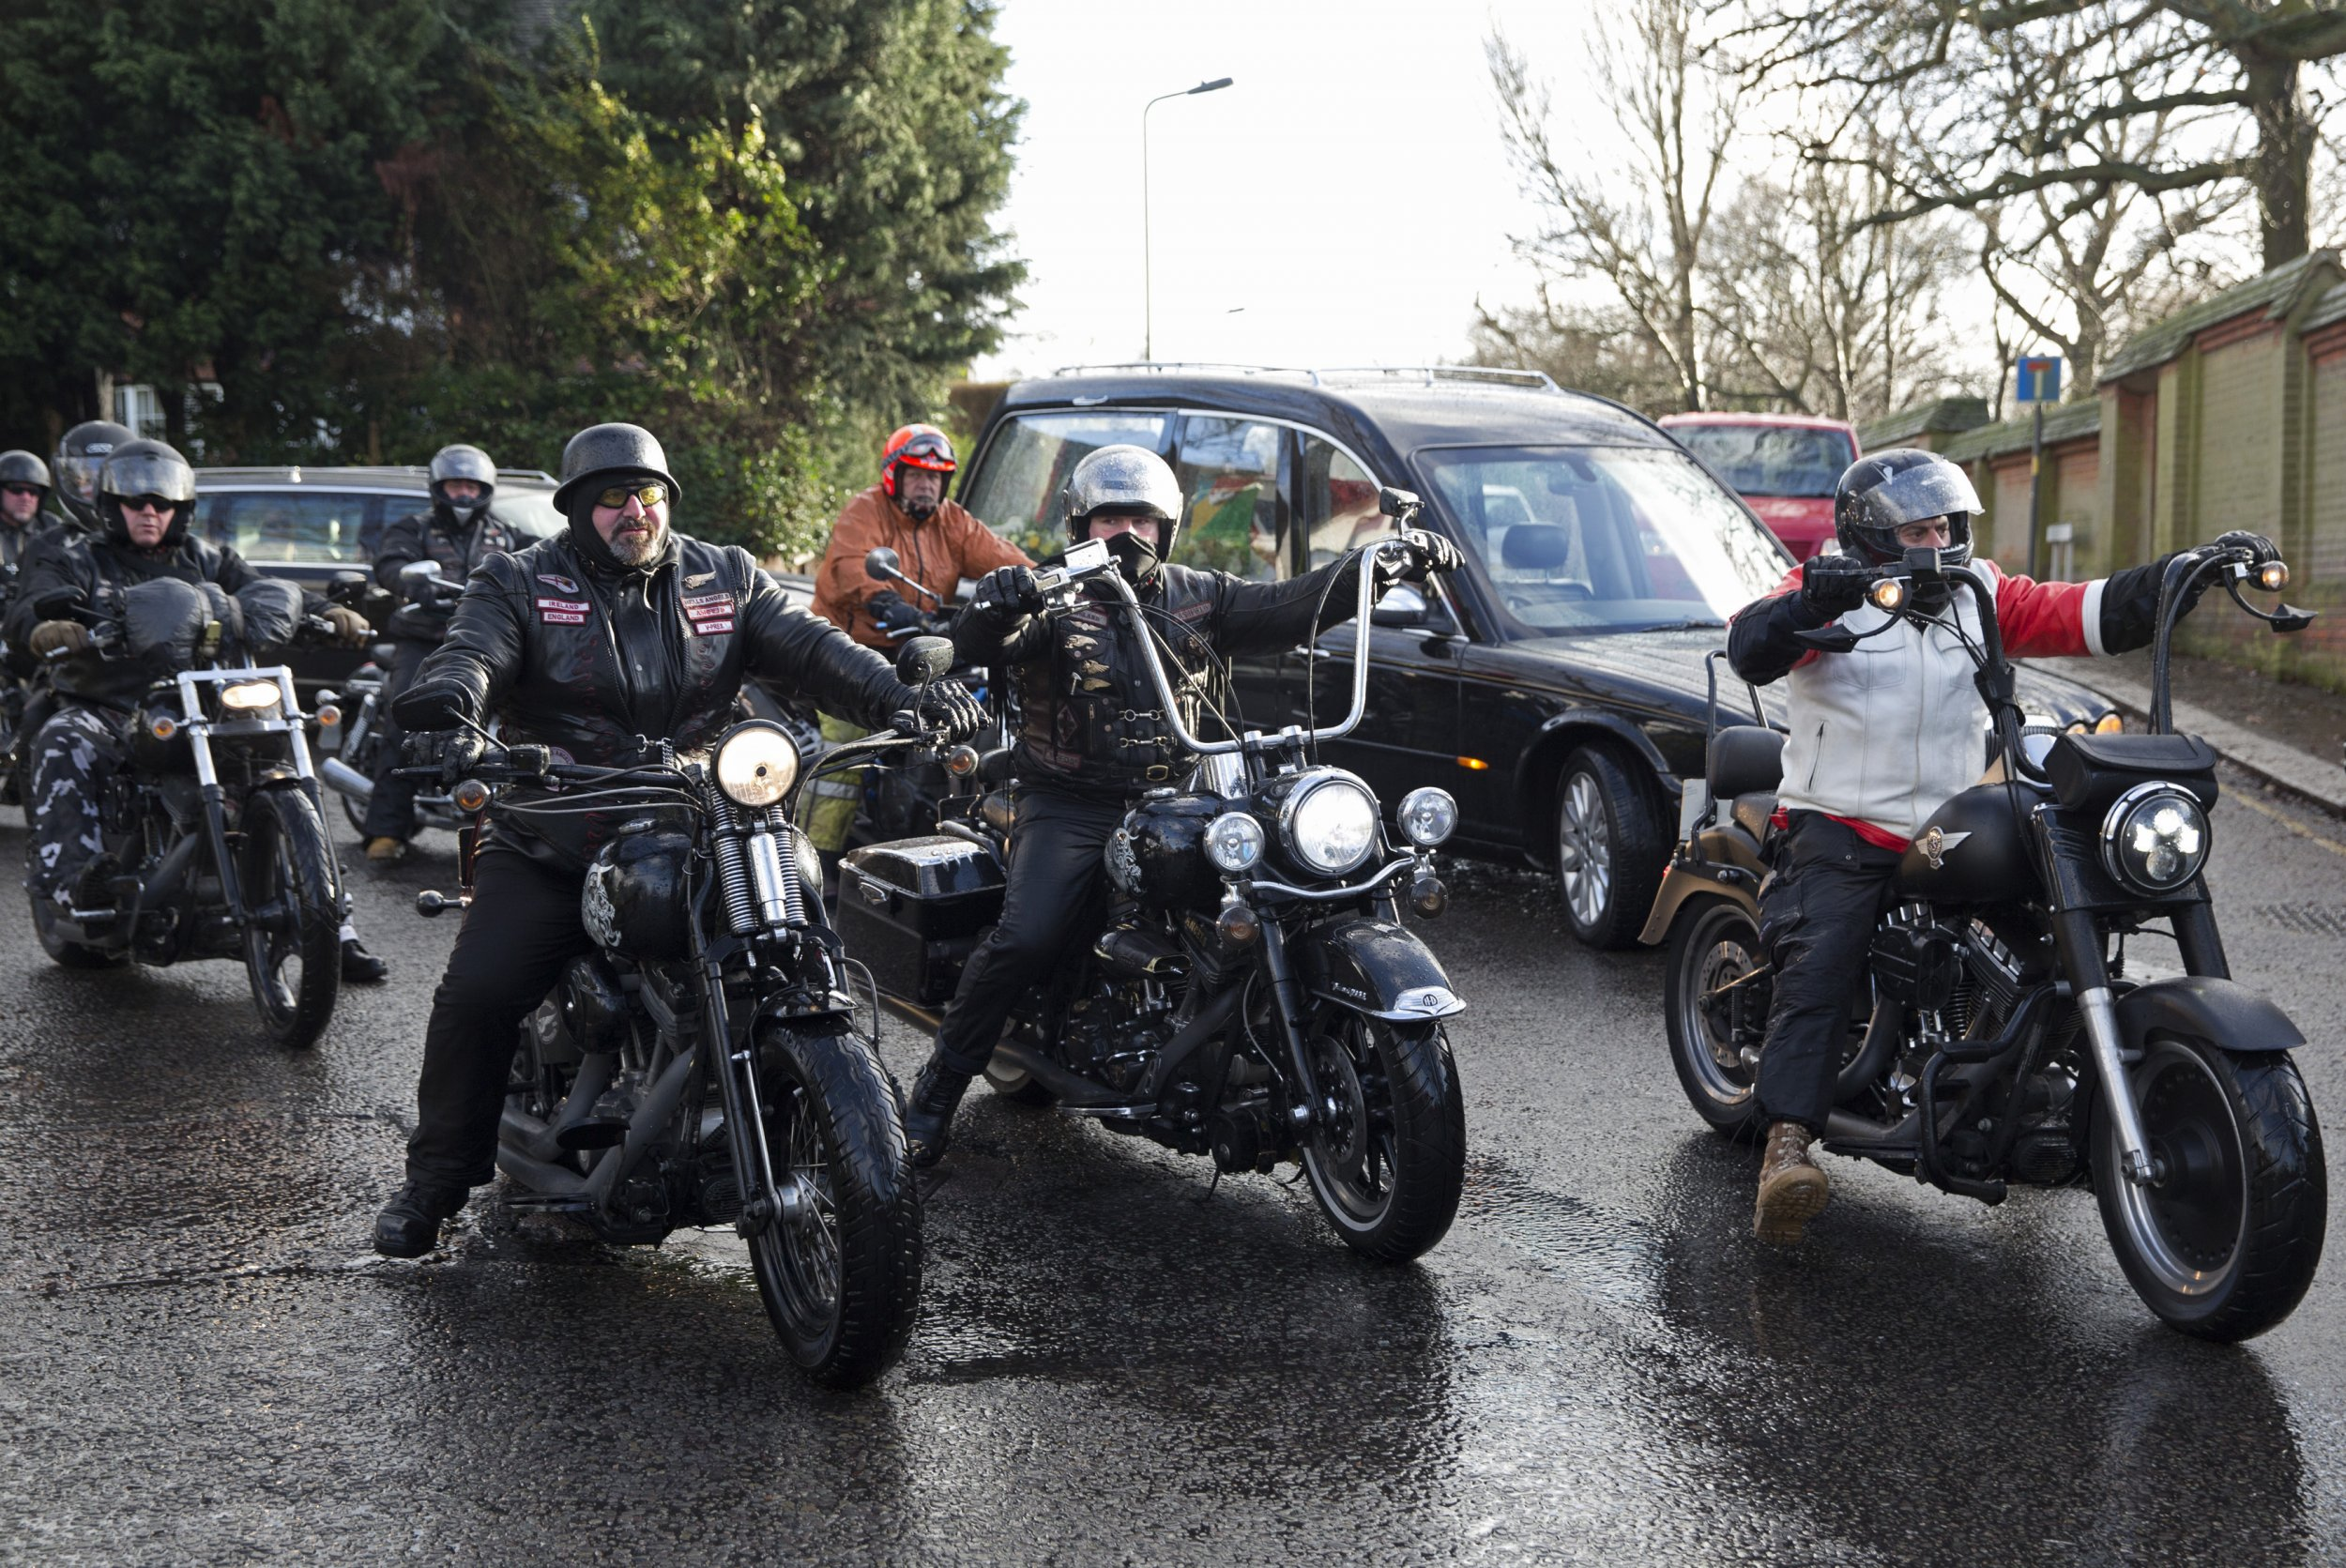 Refugees in Denmark, the Hells Angels Have Got Your Back